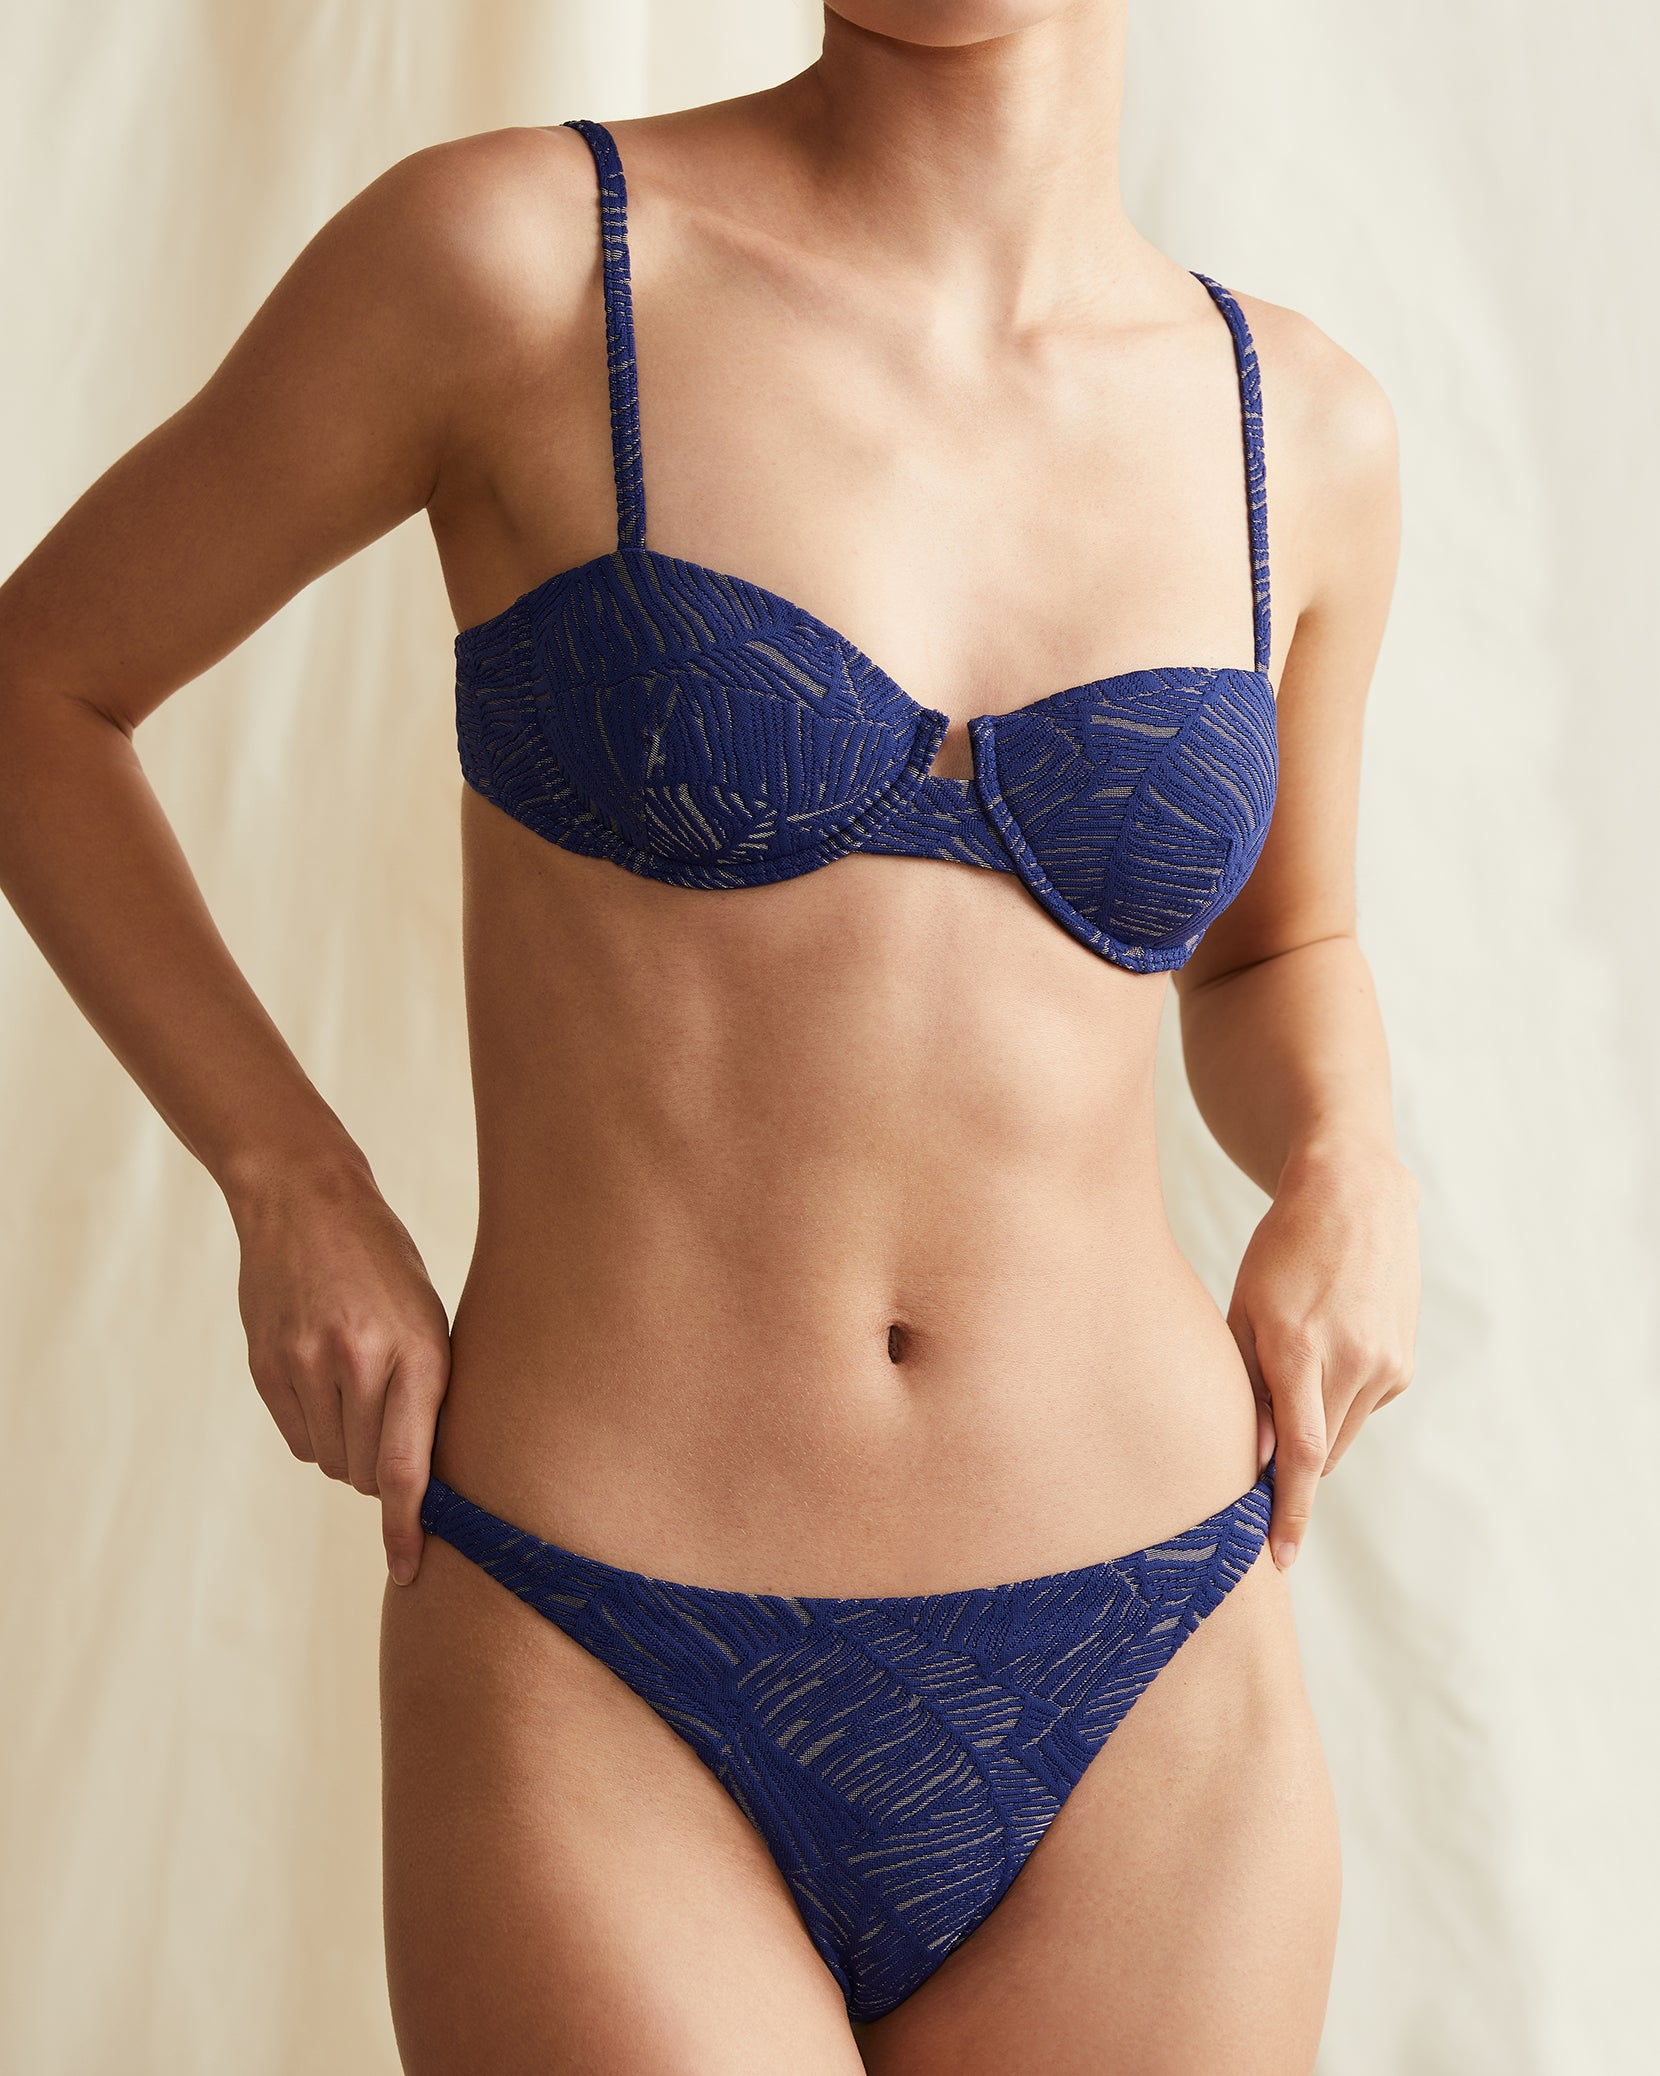 Ashley Palm Jacquard Bikini Bottom in Navy - 4 - Onia